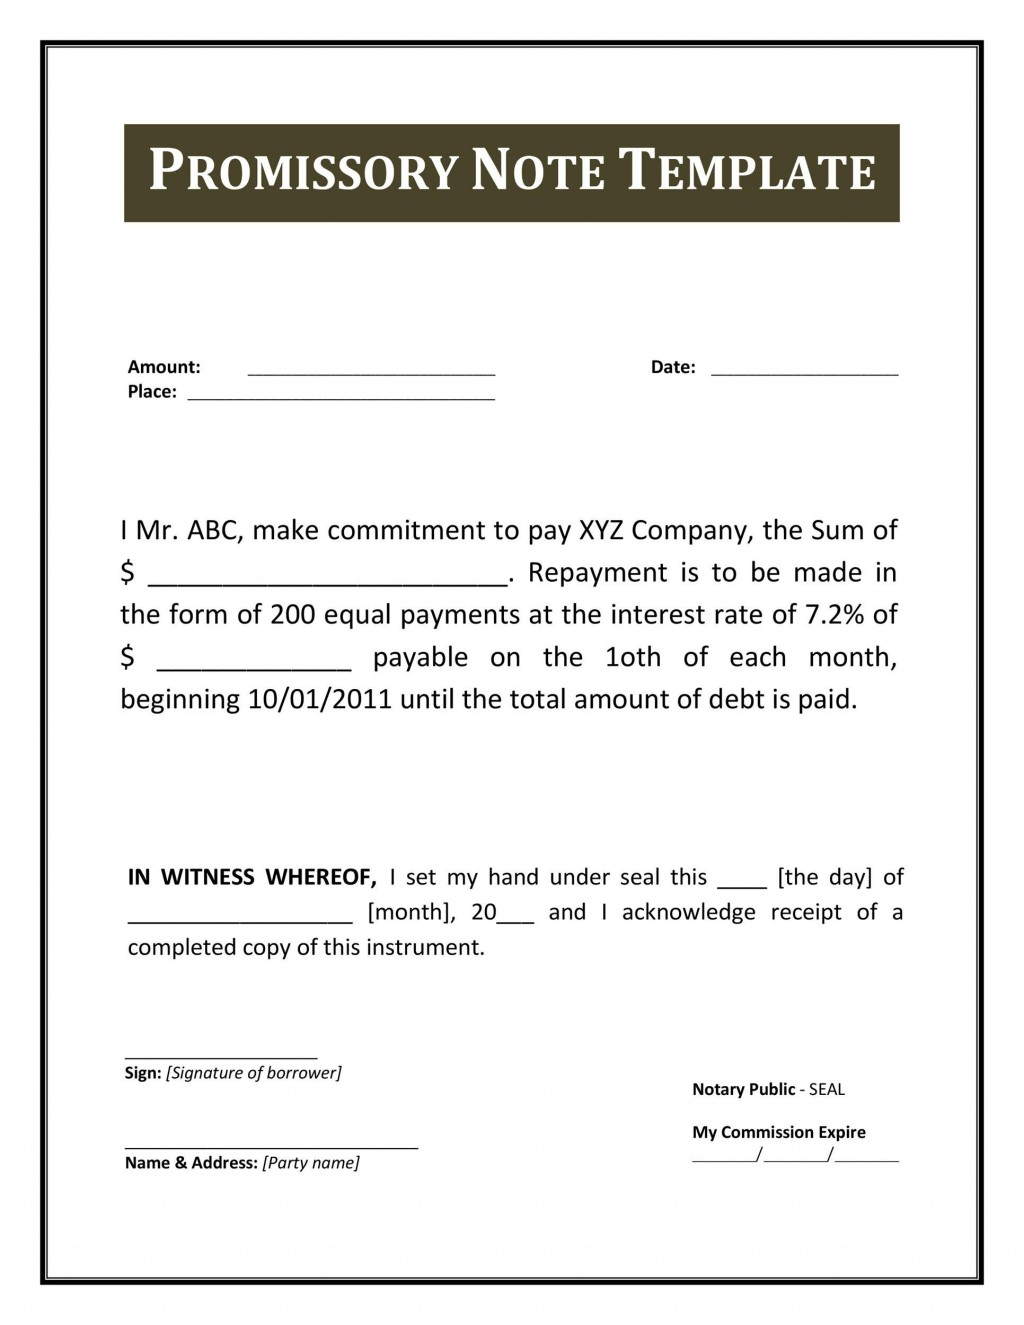 005 Marvelou Loan Promissory Note Template Highest Quality  Family Busines Format For HandLarge